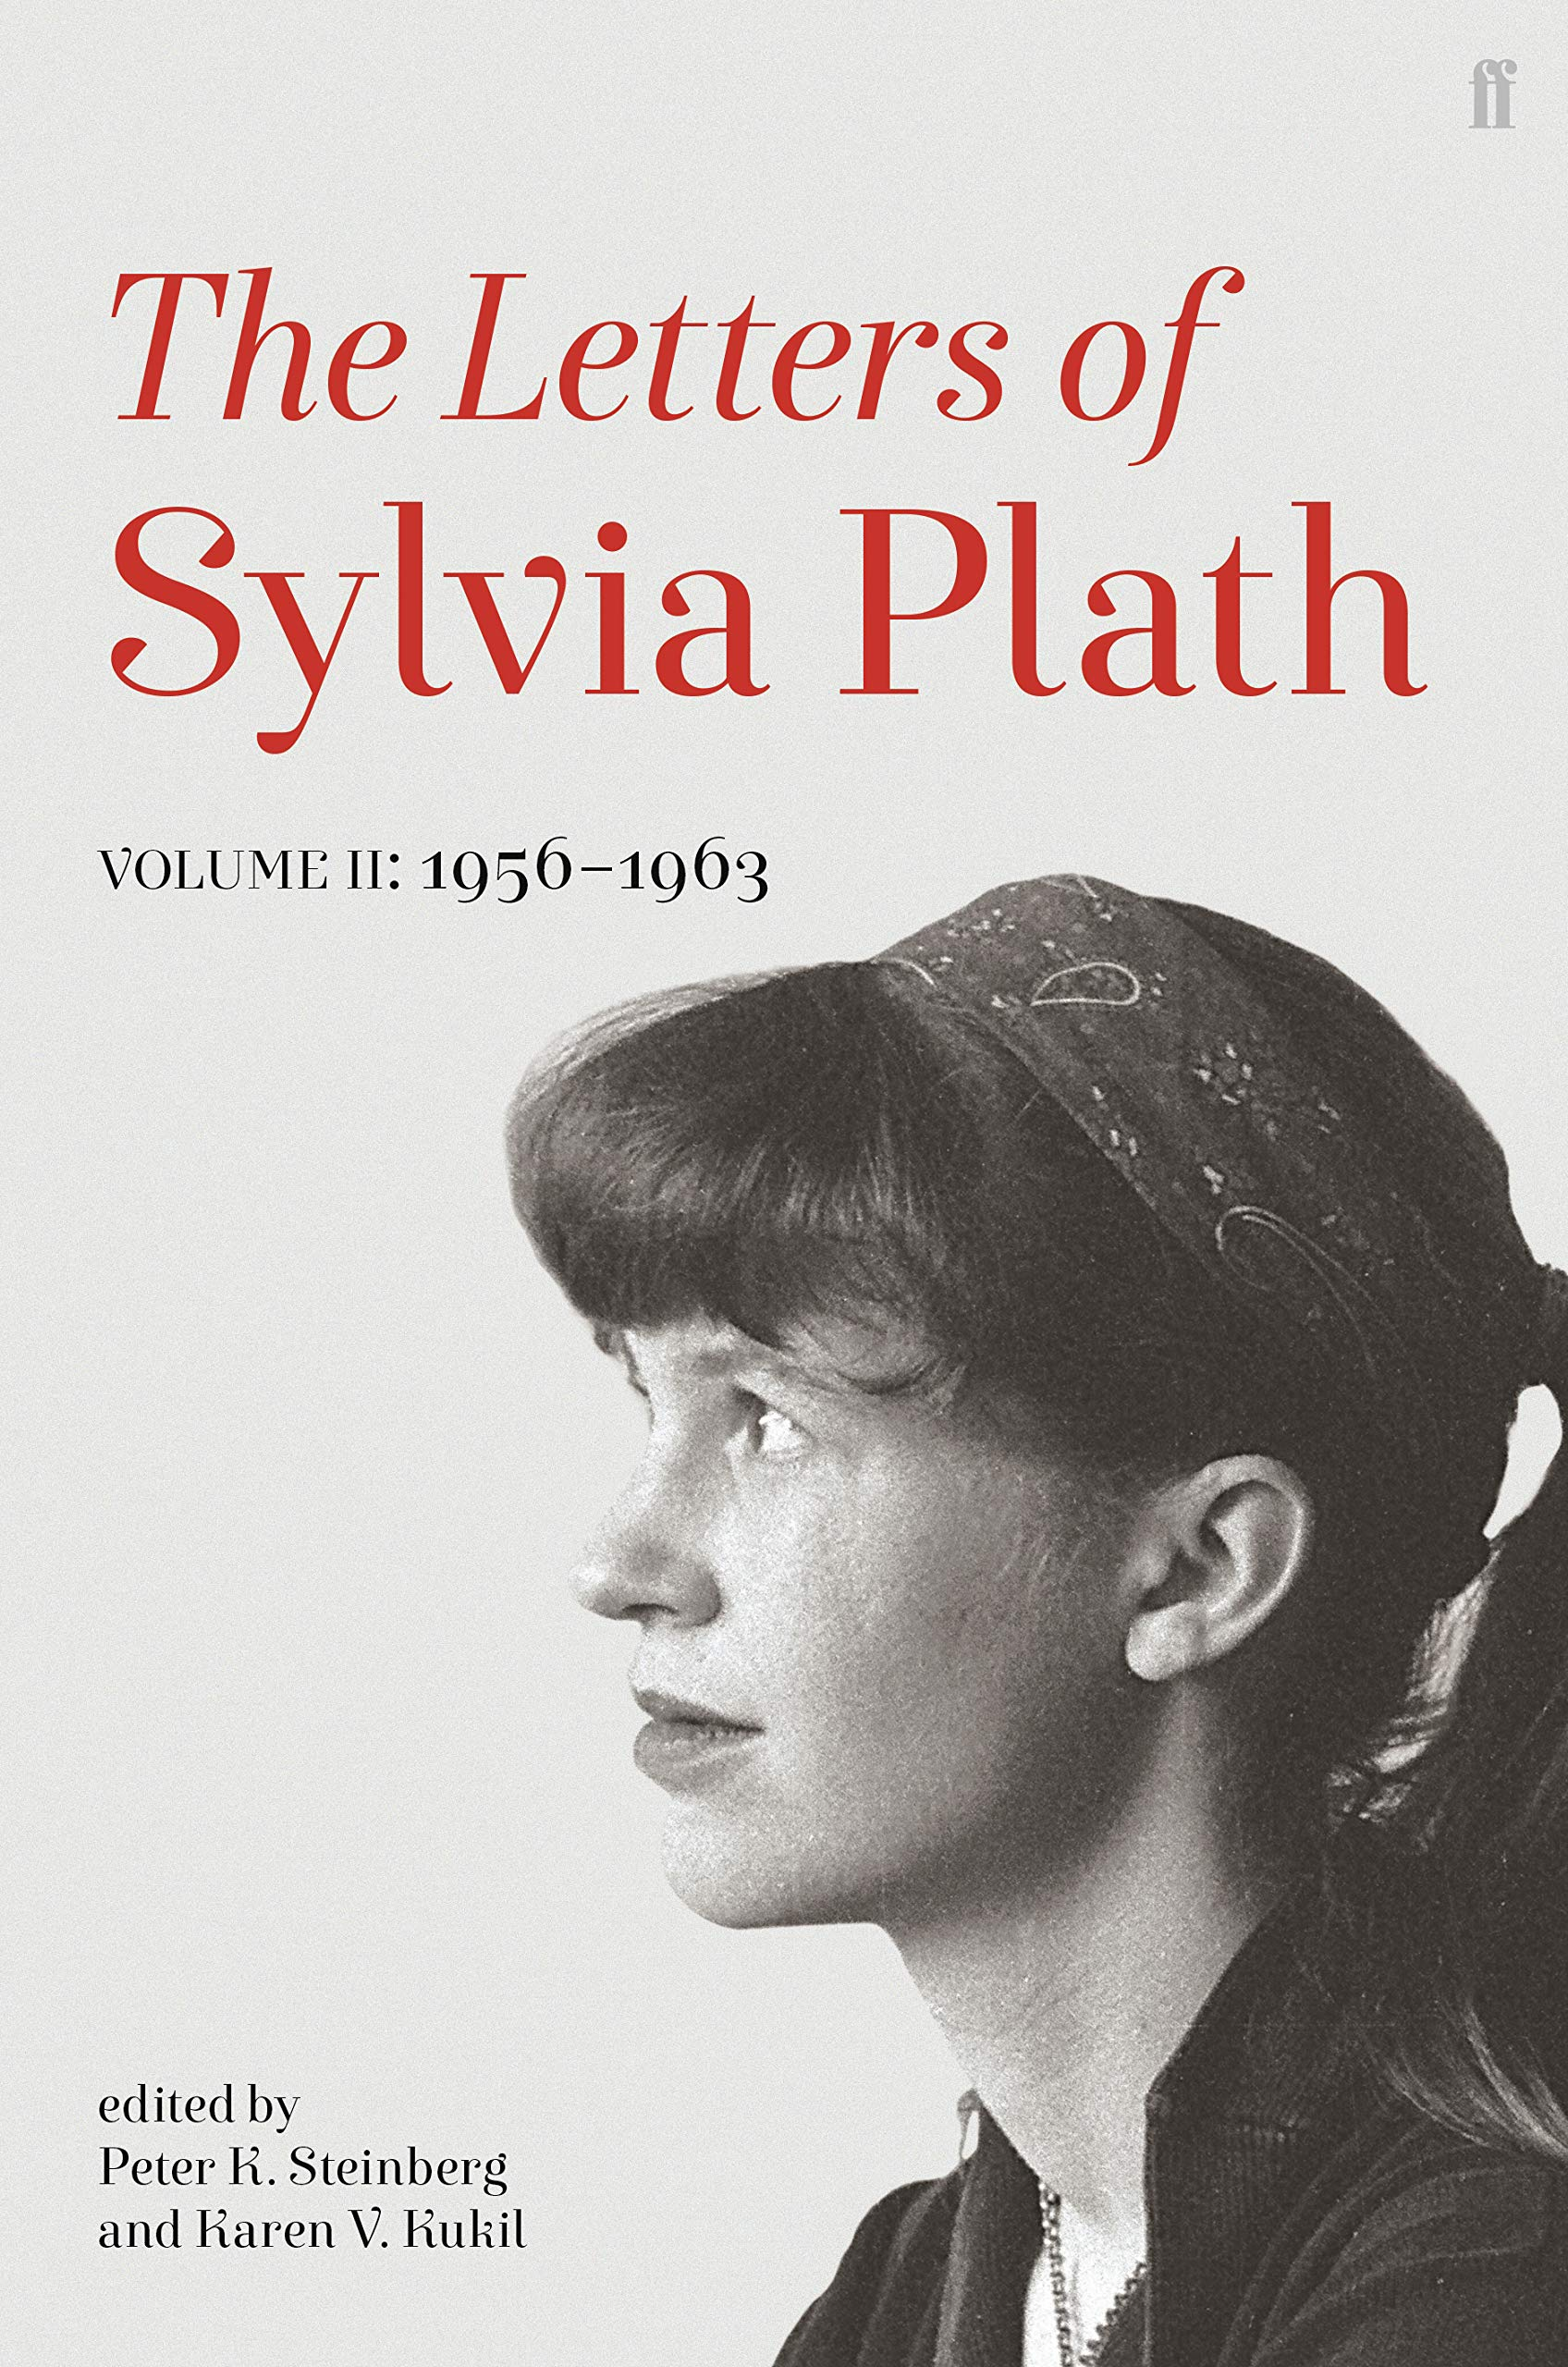 Image result for The Letters of Sylvia Plath: Volume II 1956-1963